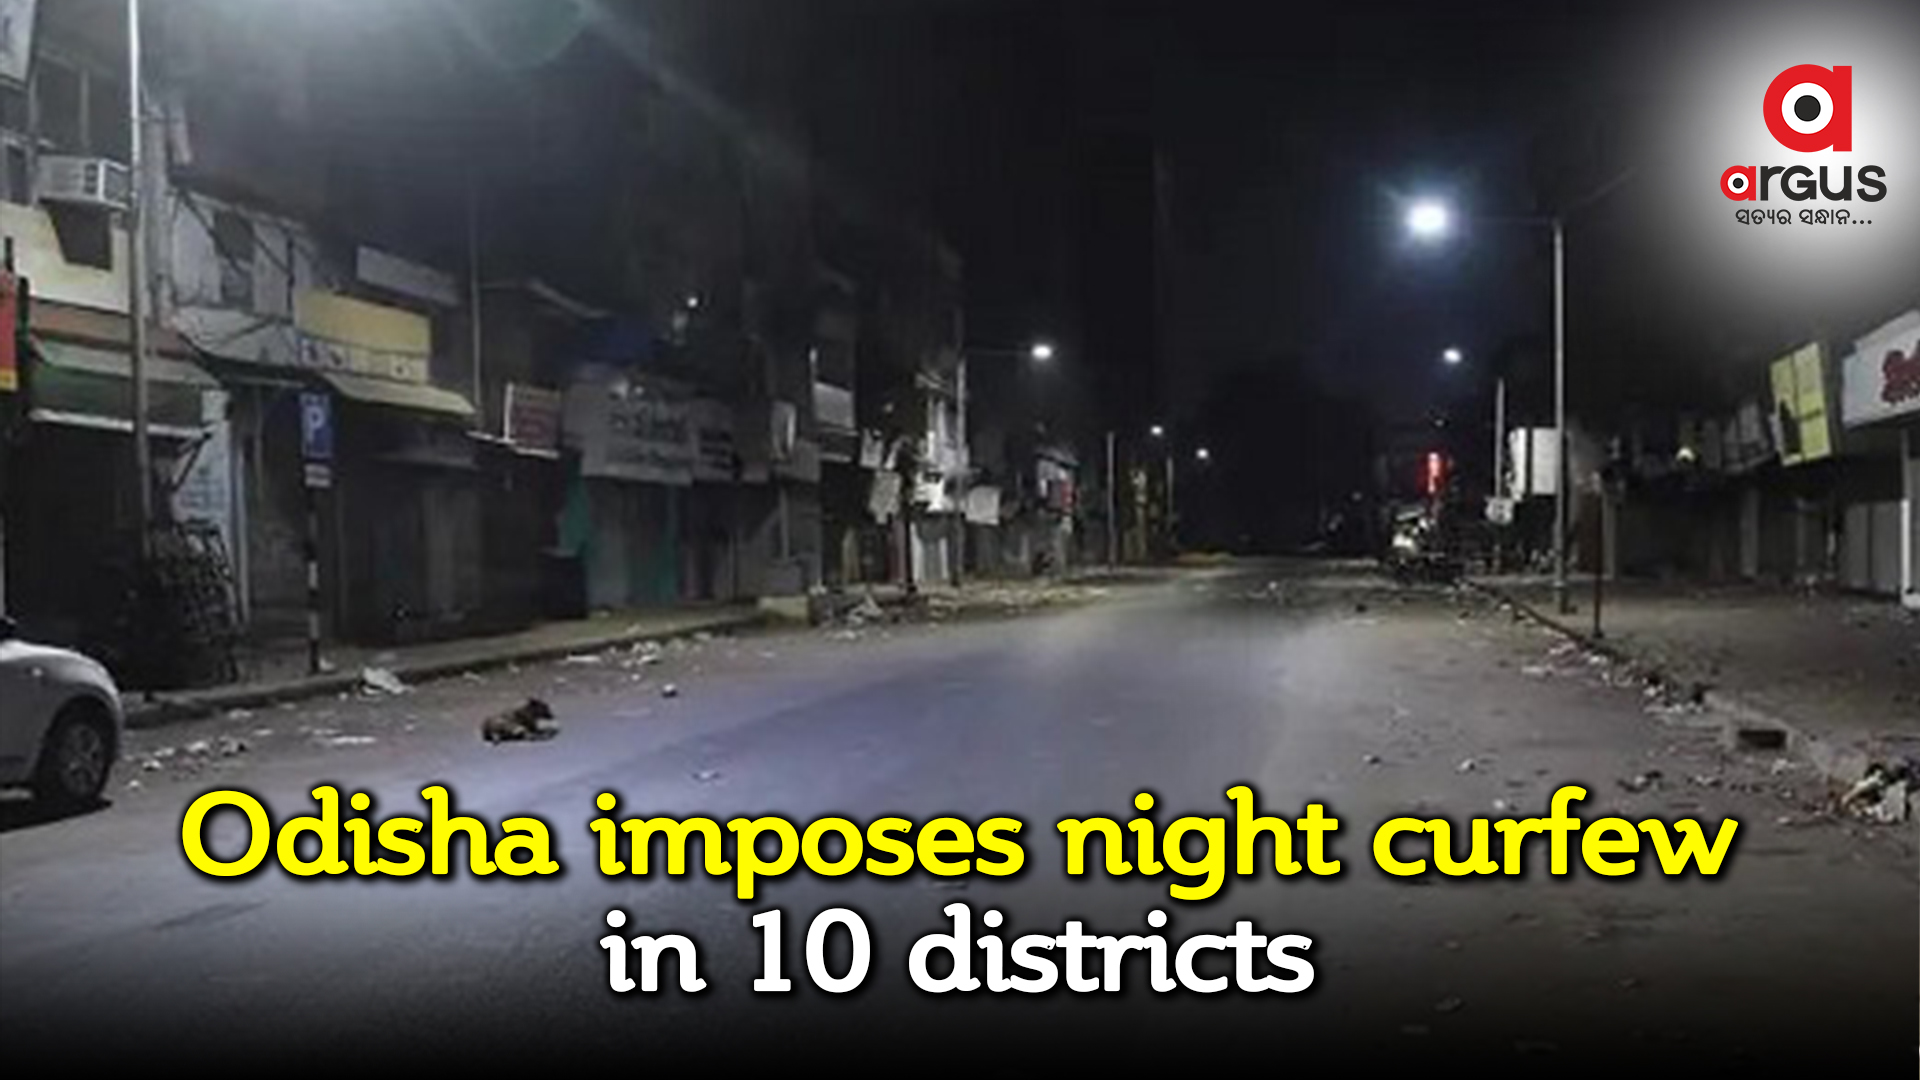 Covid-19: Odisha imposes night curfew in 10 districts from April 5